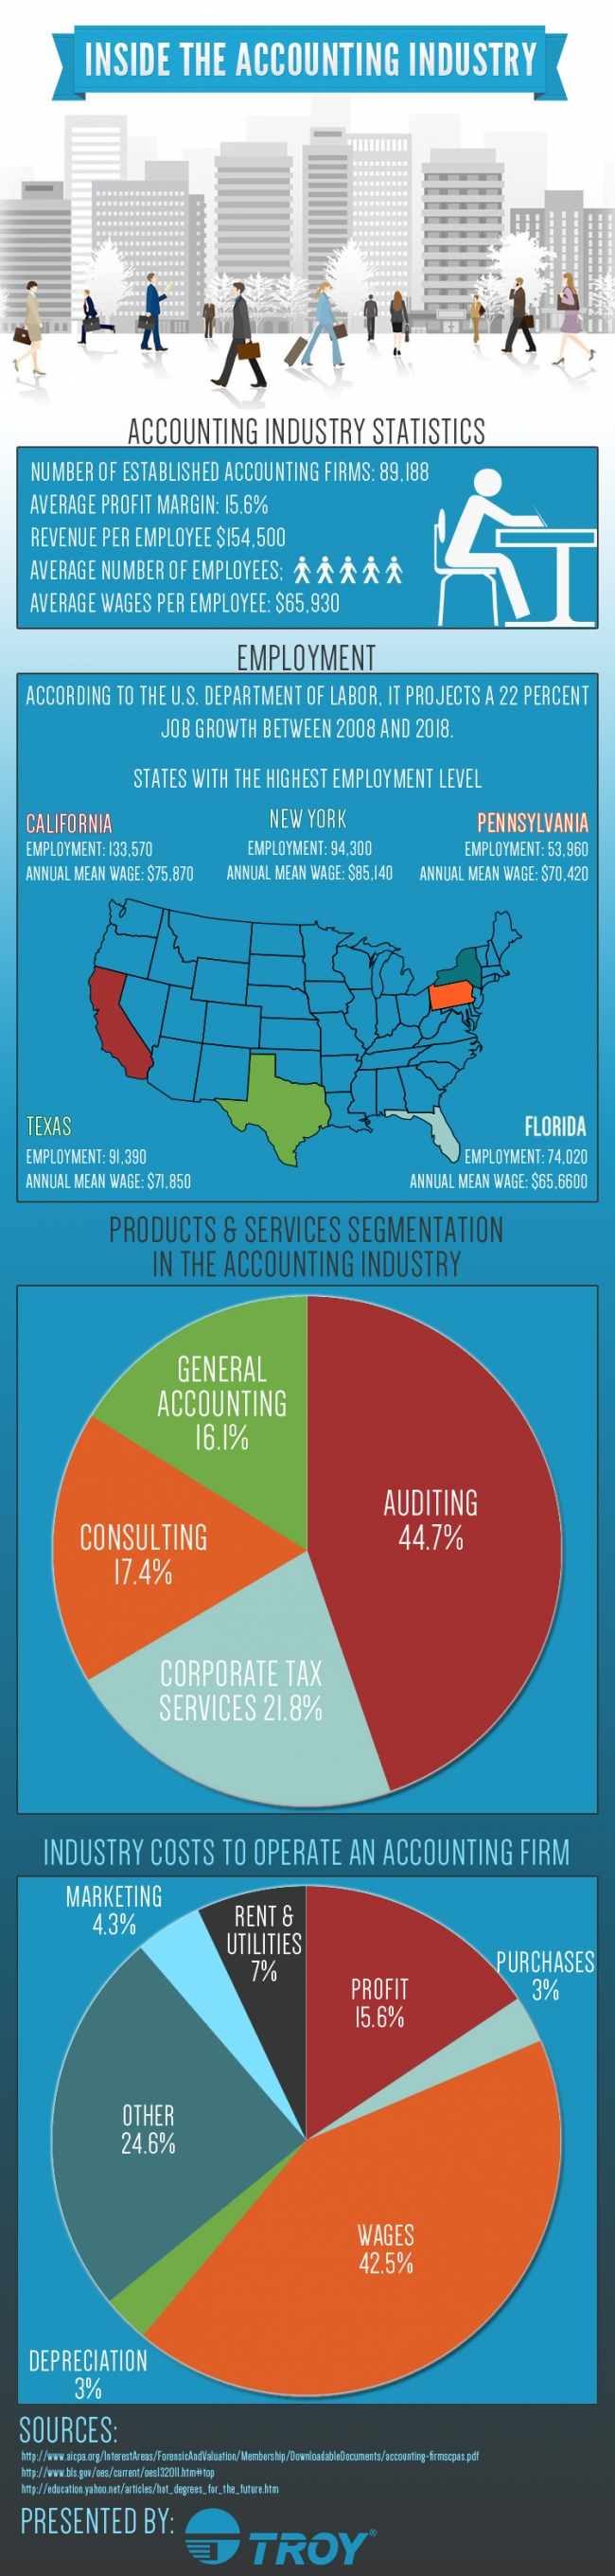 A Look Inside the Accounting Industry